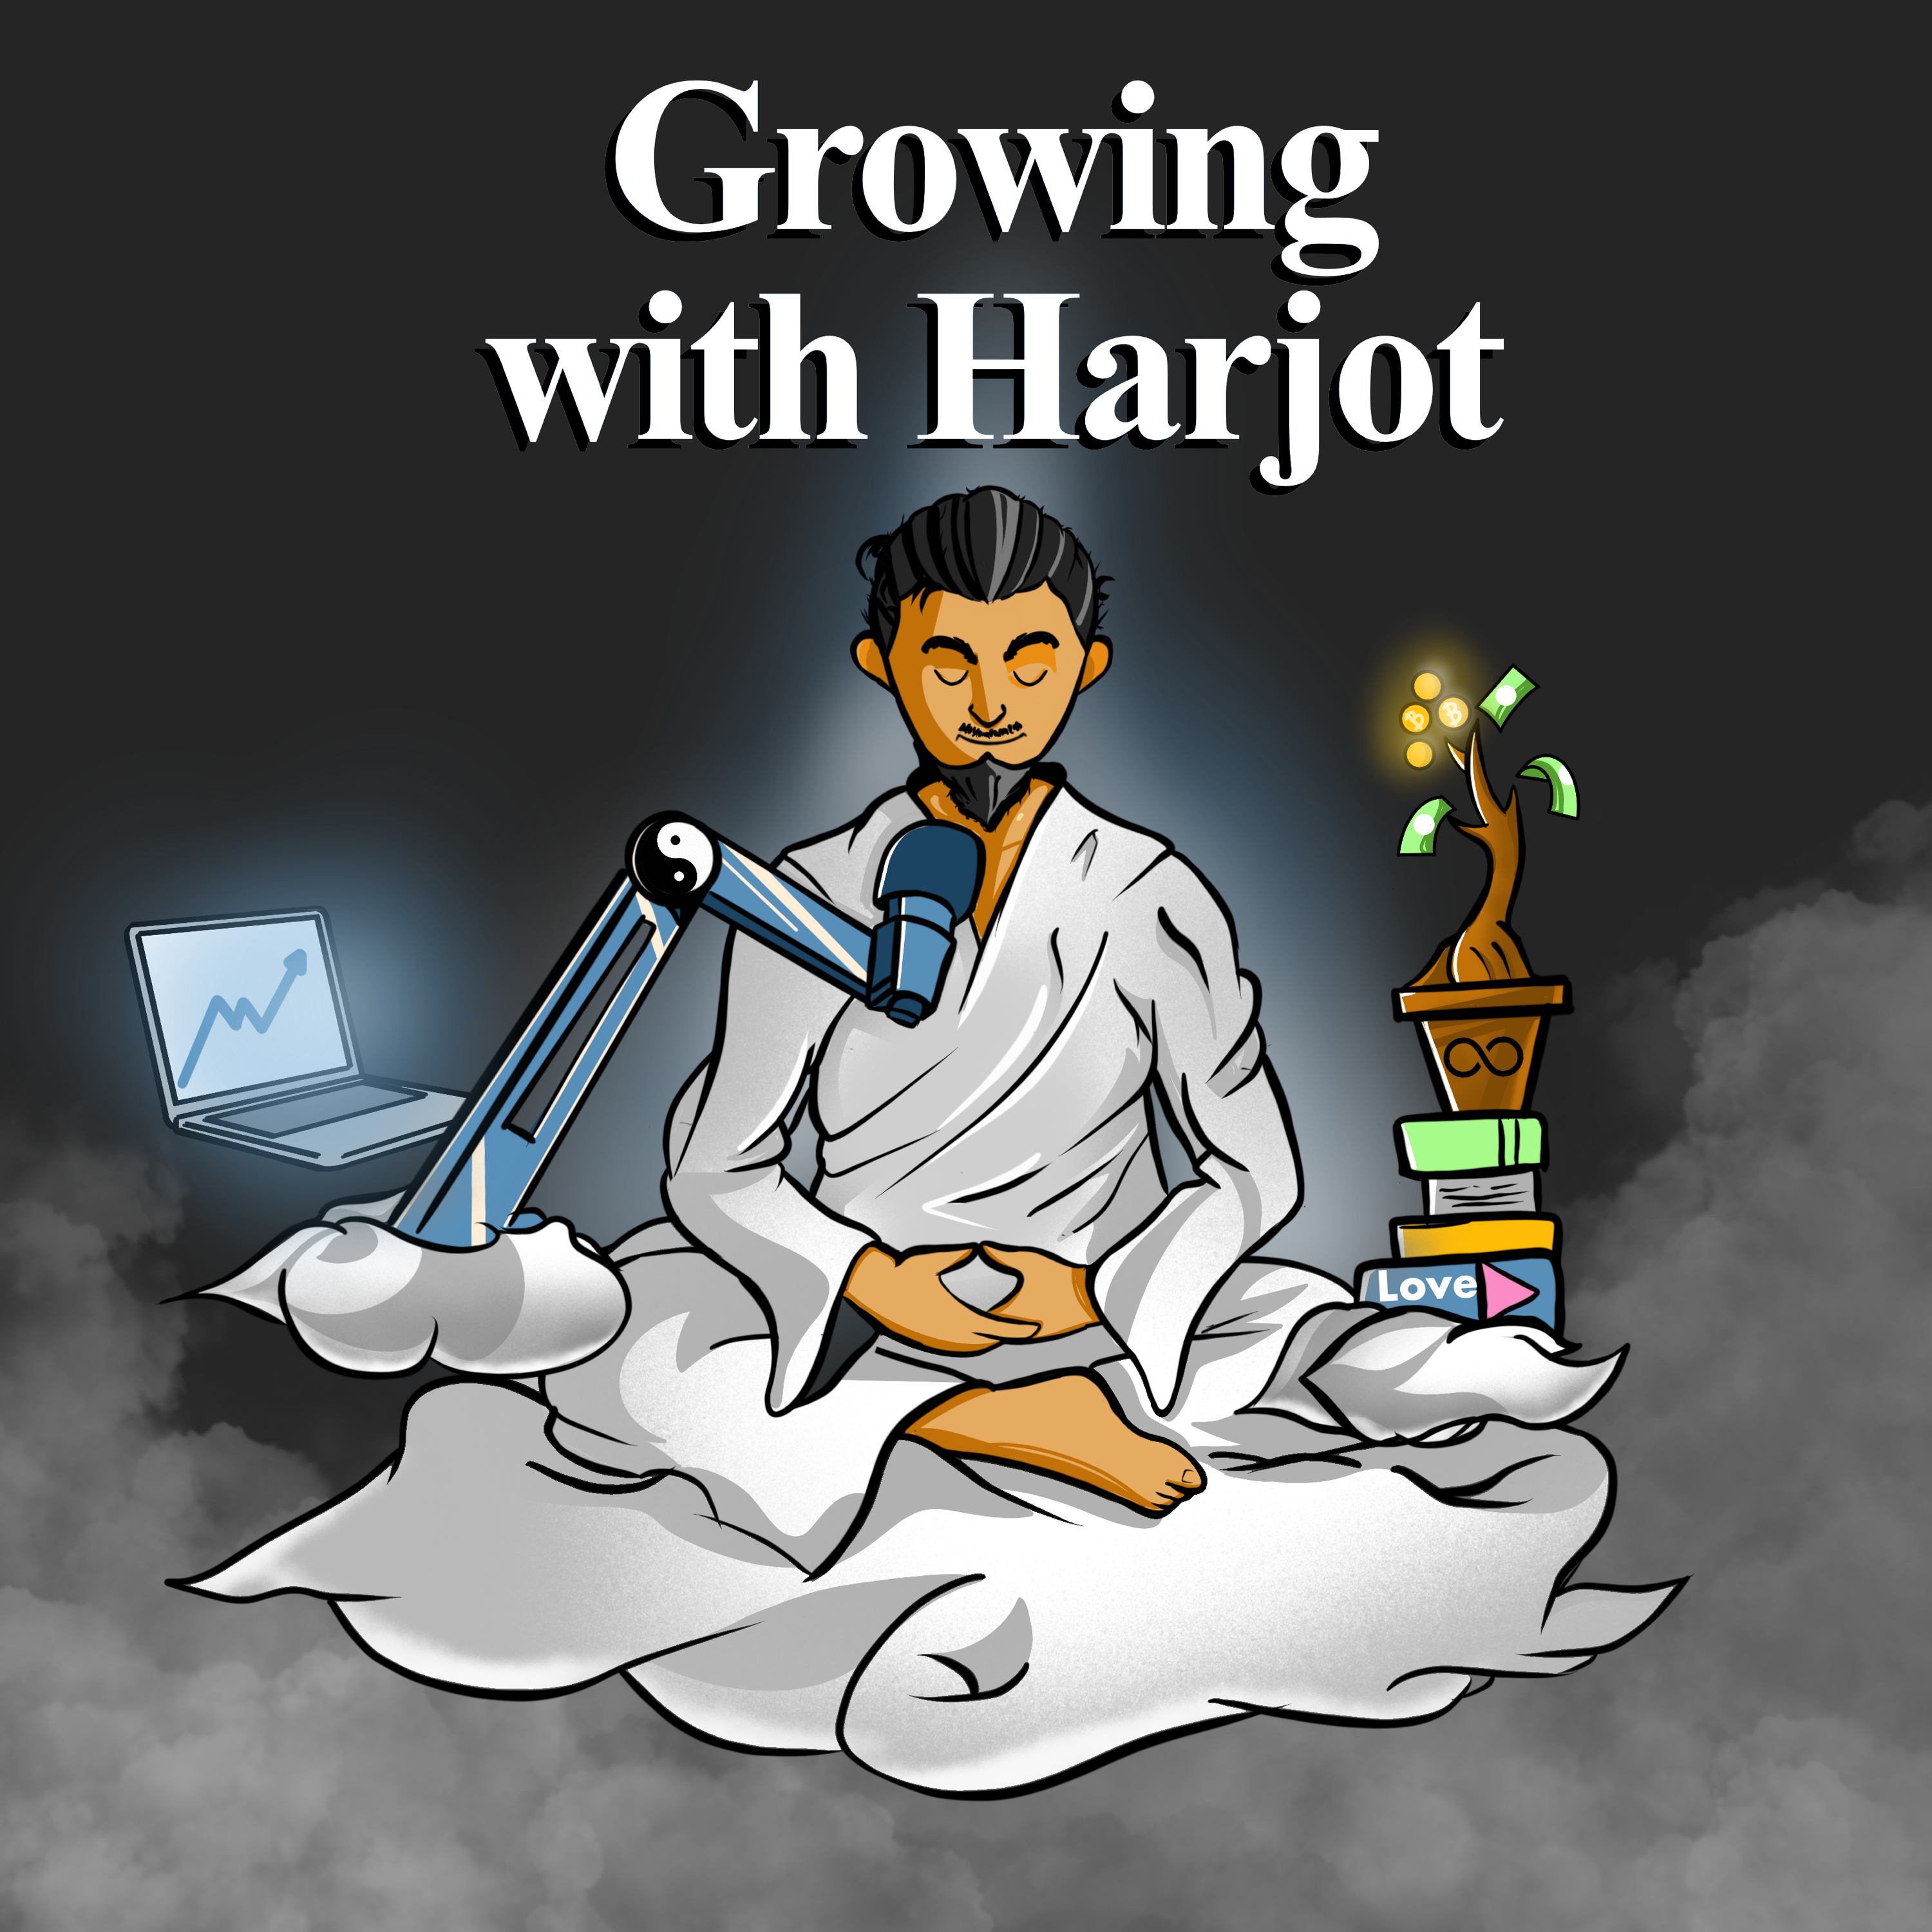 044: How to get desired results from life show art